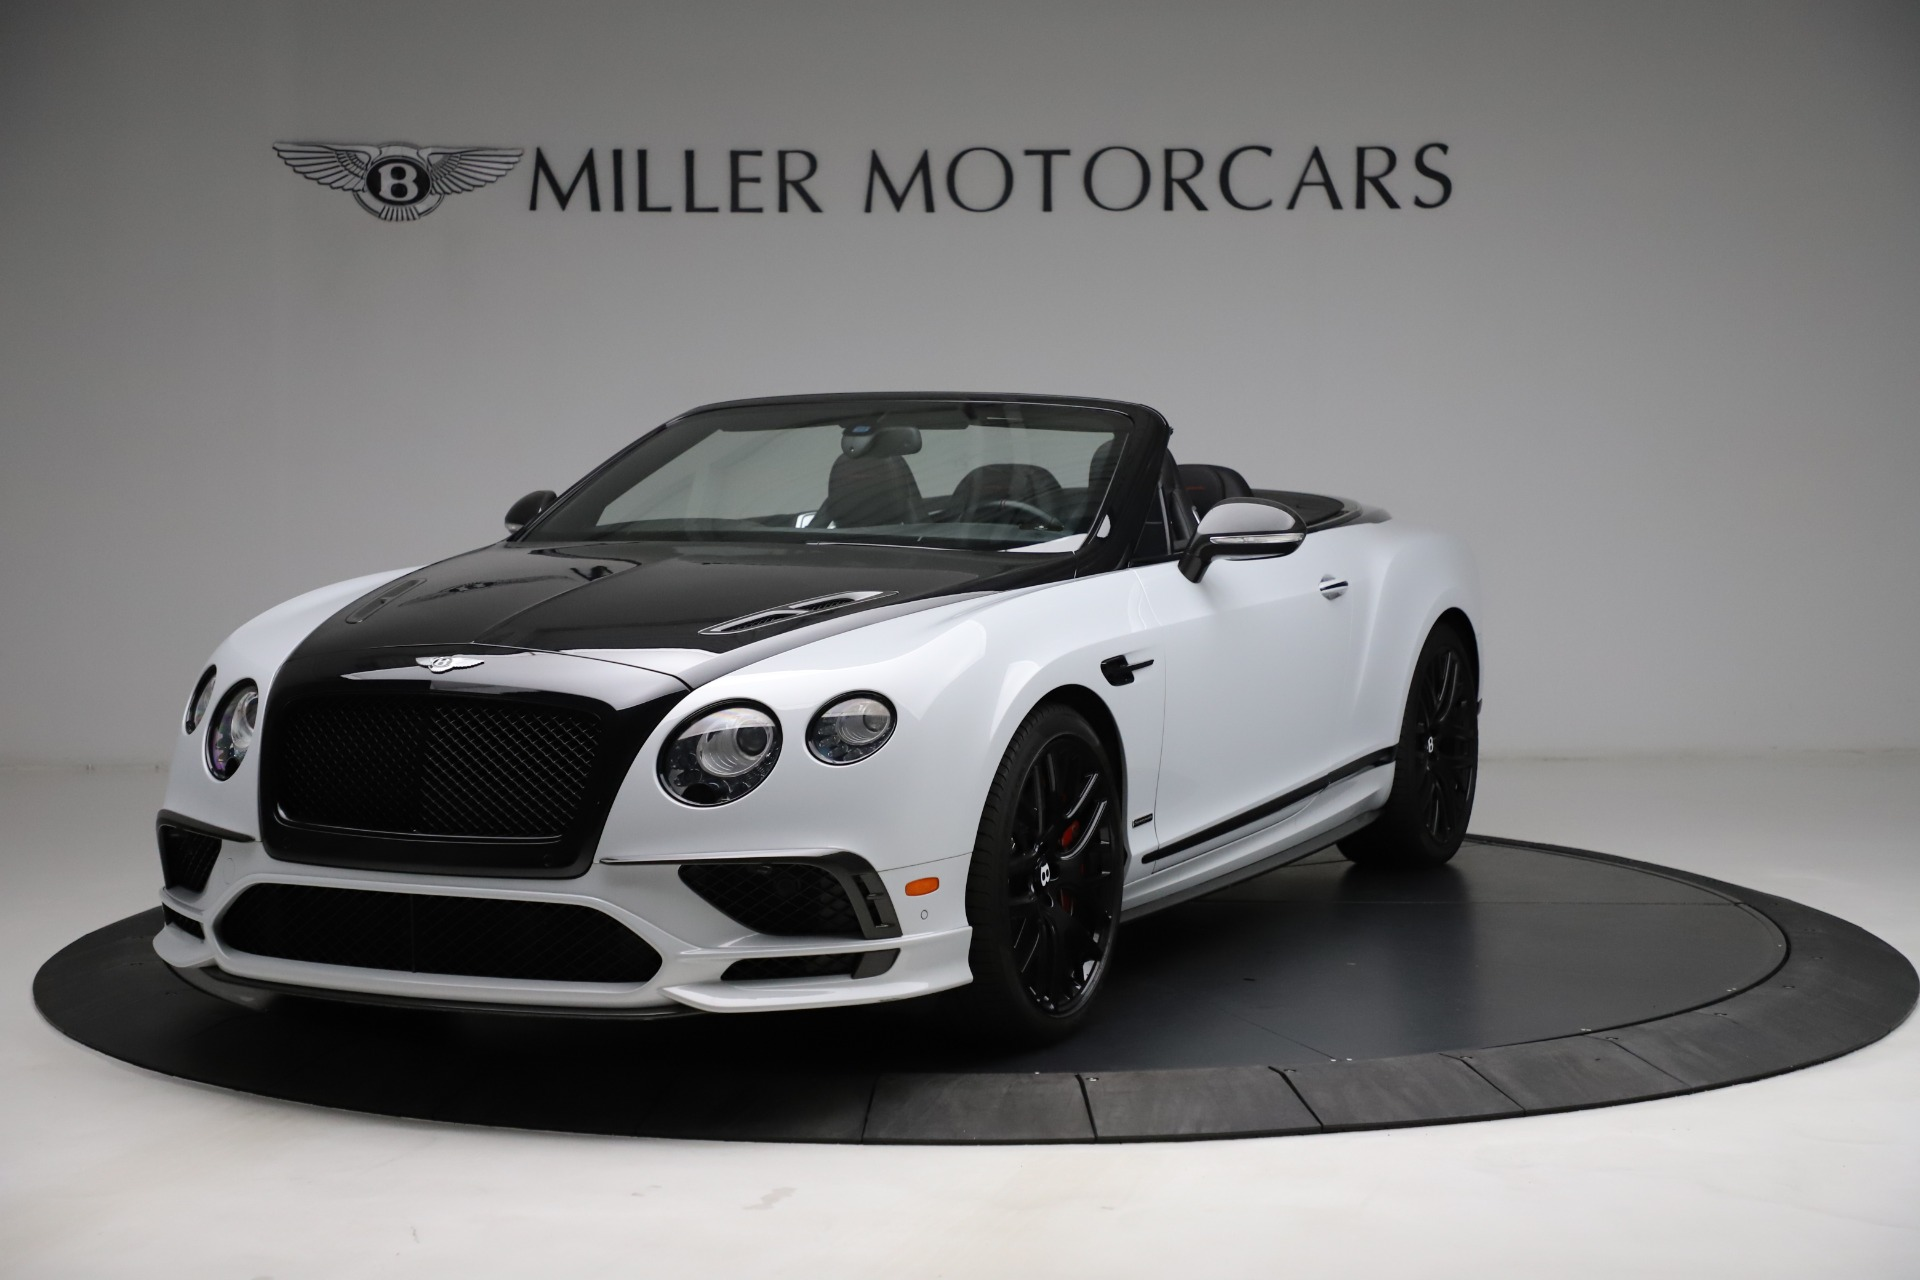 Used 2018 Bentley Continental GT Supersports for sale $209,900 at Maserati of Westport in Westport CT 06880 1